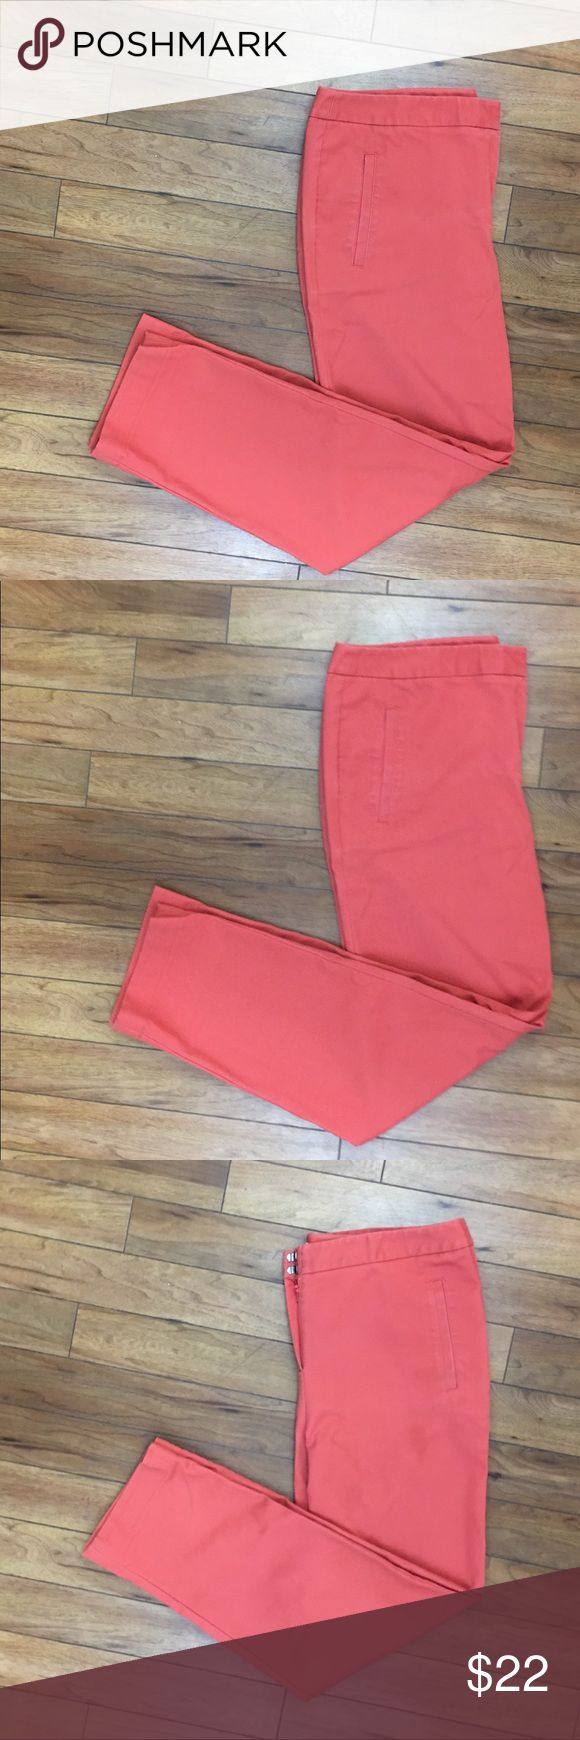 """Chico's salmon pants size 2 33.5"""" Details: Chico's salmon pants  Size: Chico's size 2 which is 33.5"""" waist according to Chico's size chart as listed!  Material: in photos  Condition: GUC Measurements are taken flat! Inseam: 28.5""""  Ankle: 7.5""""  ☑️ Bundle Discounts  ☑️Fast shipping  ☑️Posh Ambassador  ✨Shop with Confidence Chico's Pants Ankle & Cropped"""